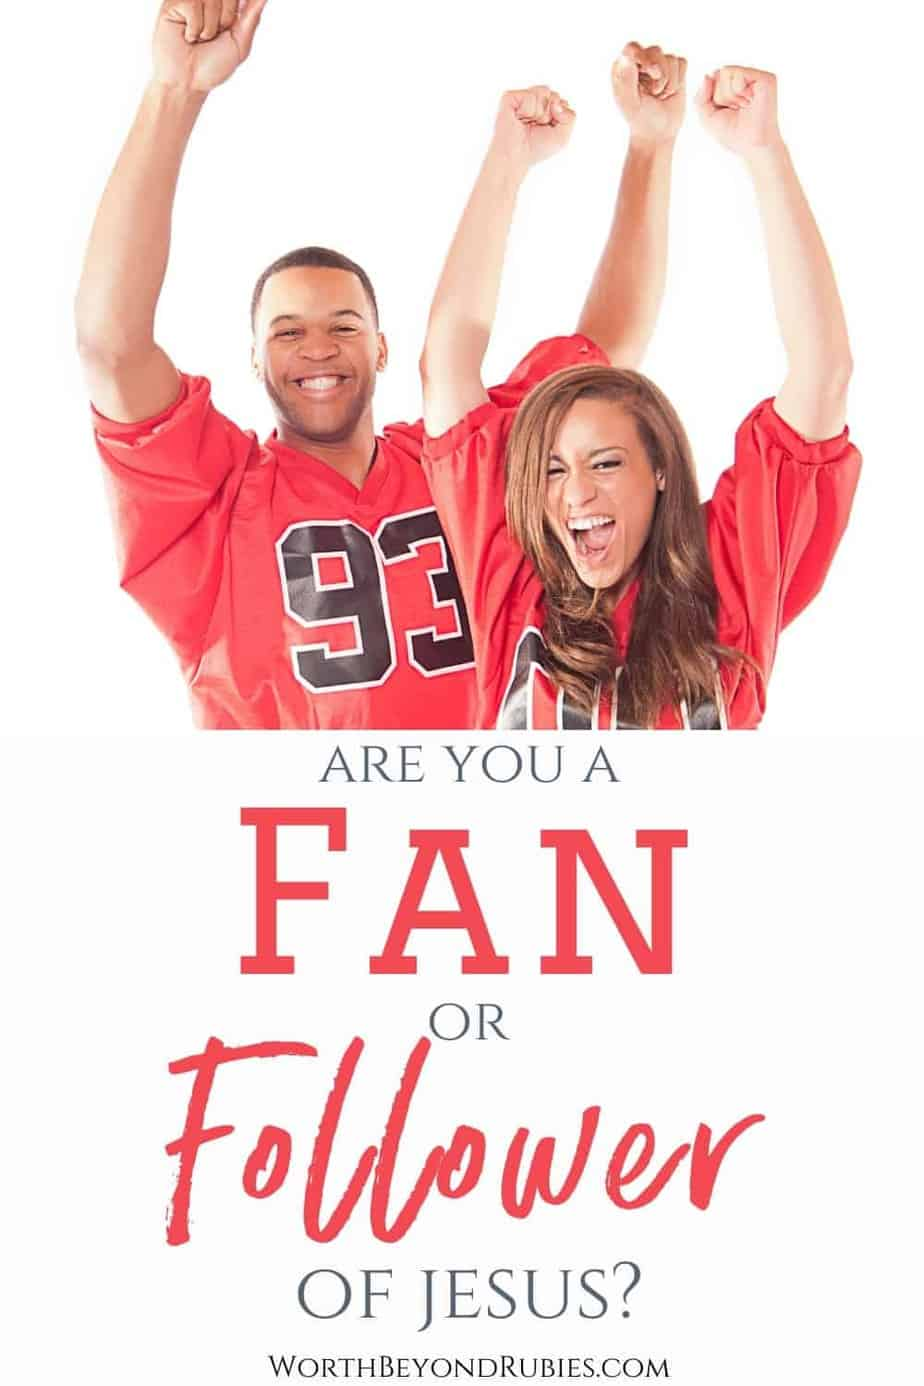 An image of a man and woman in orange football jerseys cheering with their arms raised and below the image is text that says Are You a Fan or Follower of Jesus?